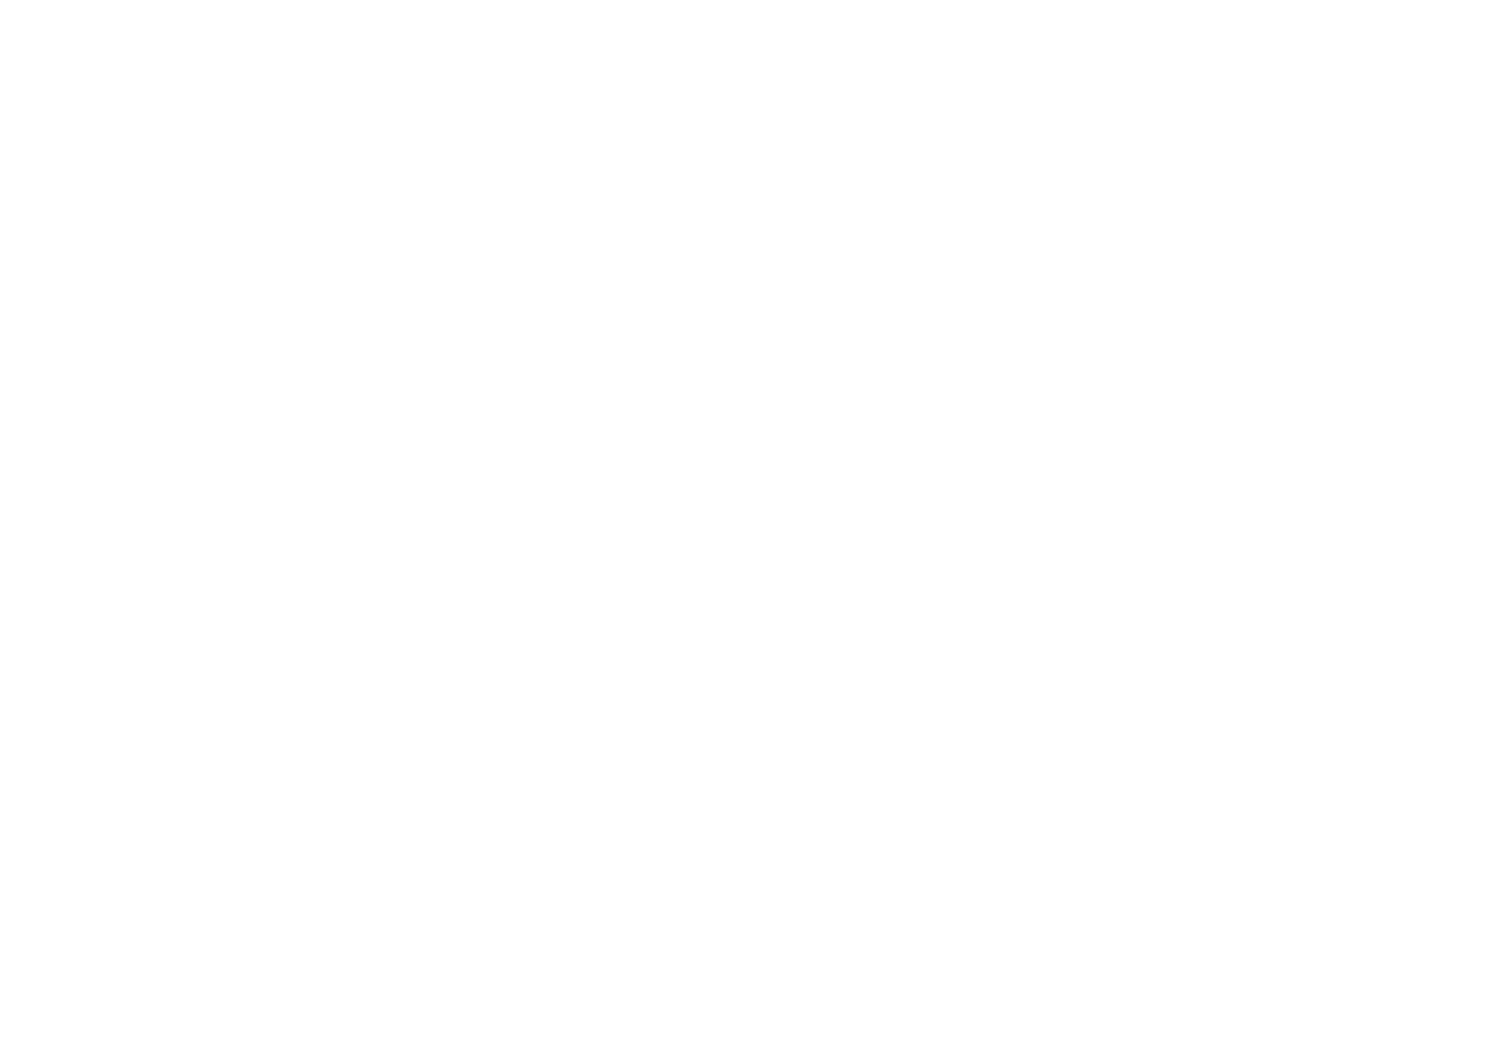 Made In New York Pizza